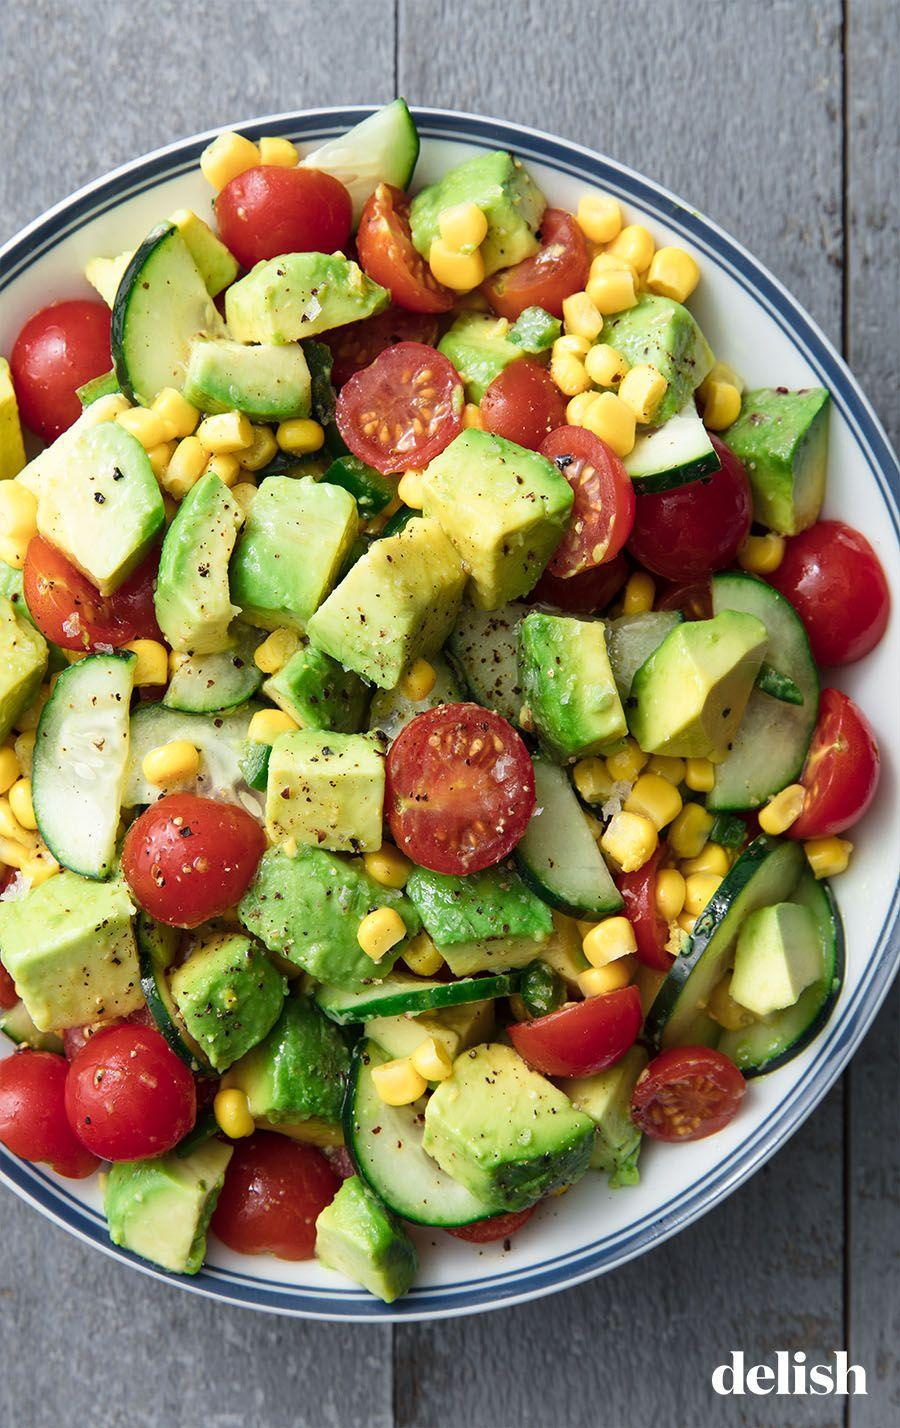 "<p>This dish tastes like summer in a bowl.</p><p>Get the recipe from <a href=""https://www.delish.com/cooking/recipe-ideas/a19872947/avocado-tomato-salad-recipe/"" rel=""nofollow noopener"" target=""_blank"" data-ylk=""slk:Delish"" class=""link rapid-noclick-resp"">Delish</a>. </p>"